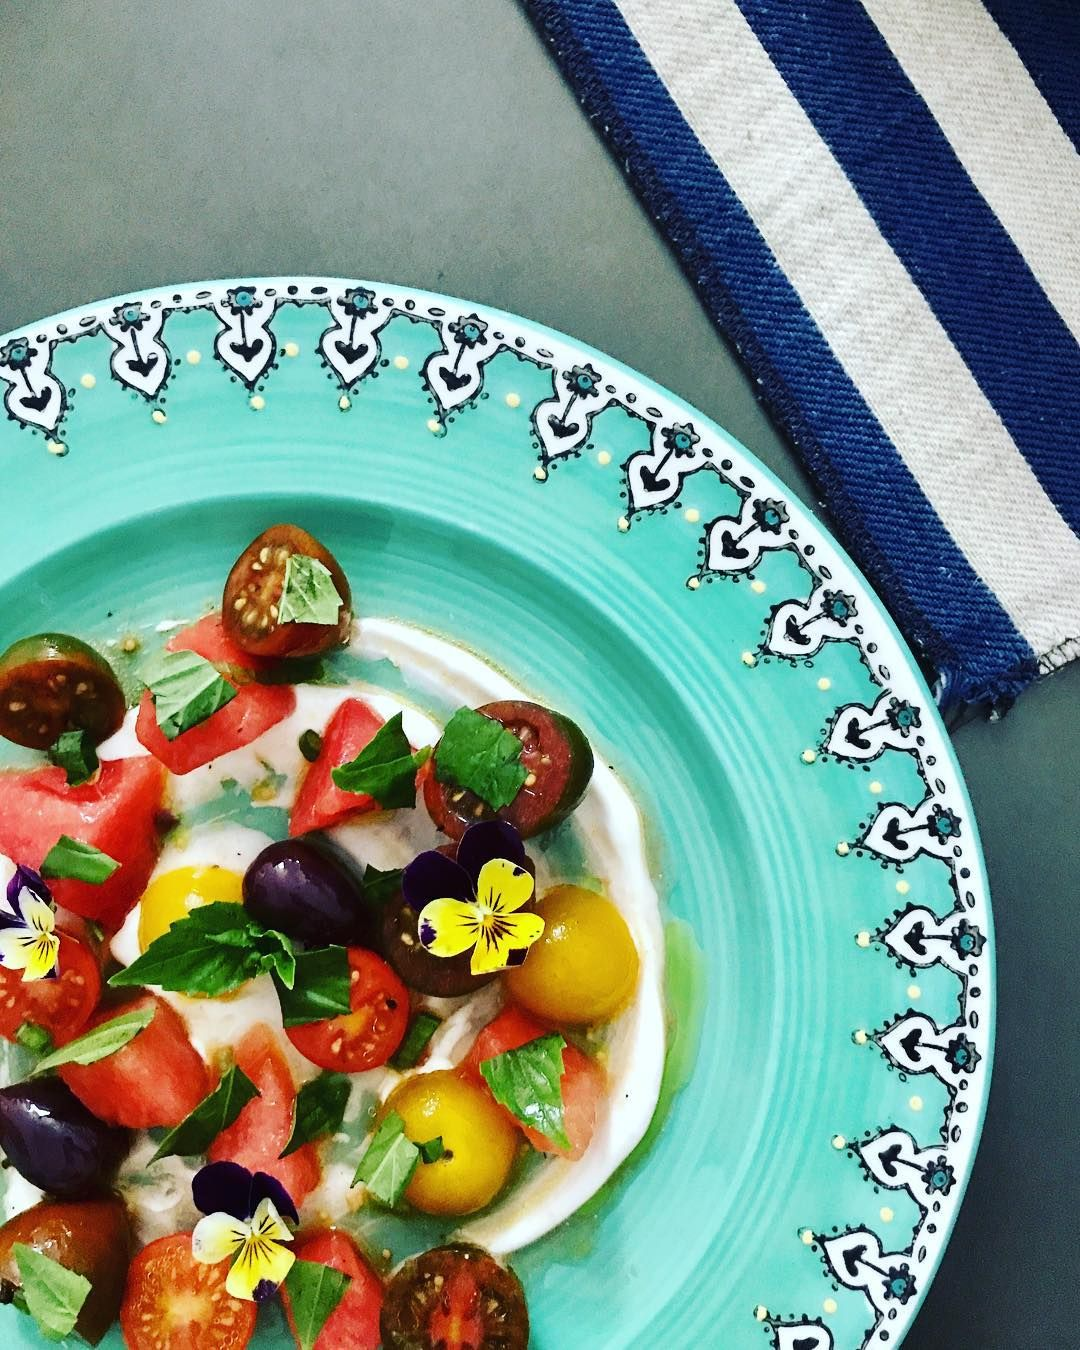 Just reminiscing on our NYC #TDPP! Everyone in Orlando is so gracious to ask about it. It was delightful from every angle. Esp this stunning / delicious creation from Guest Chef @moeenmoe. Summer Breeze Salad - Heirloom Tomato, Watermelon, Feta Whip, Calamatta Olives, w Basil & Scallions. #summer #dinnerparty #nyc